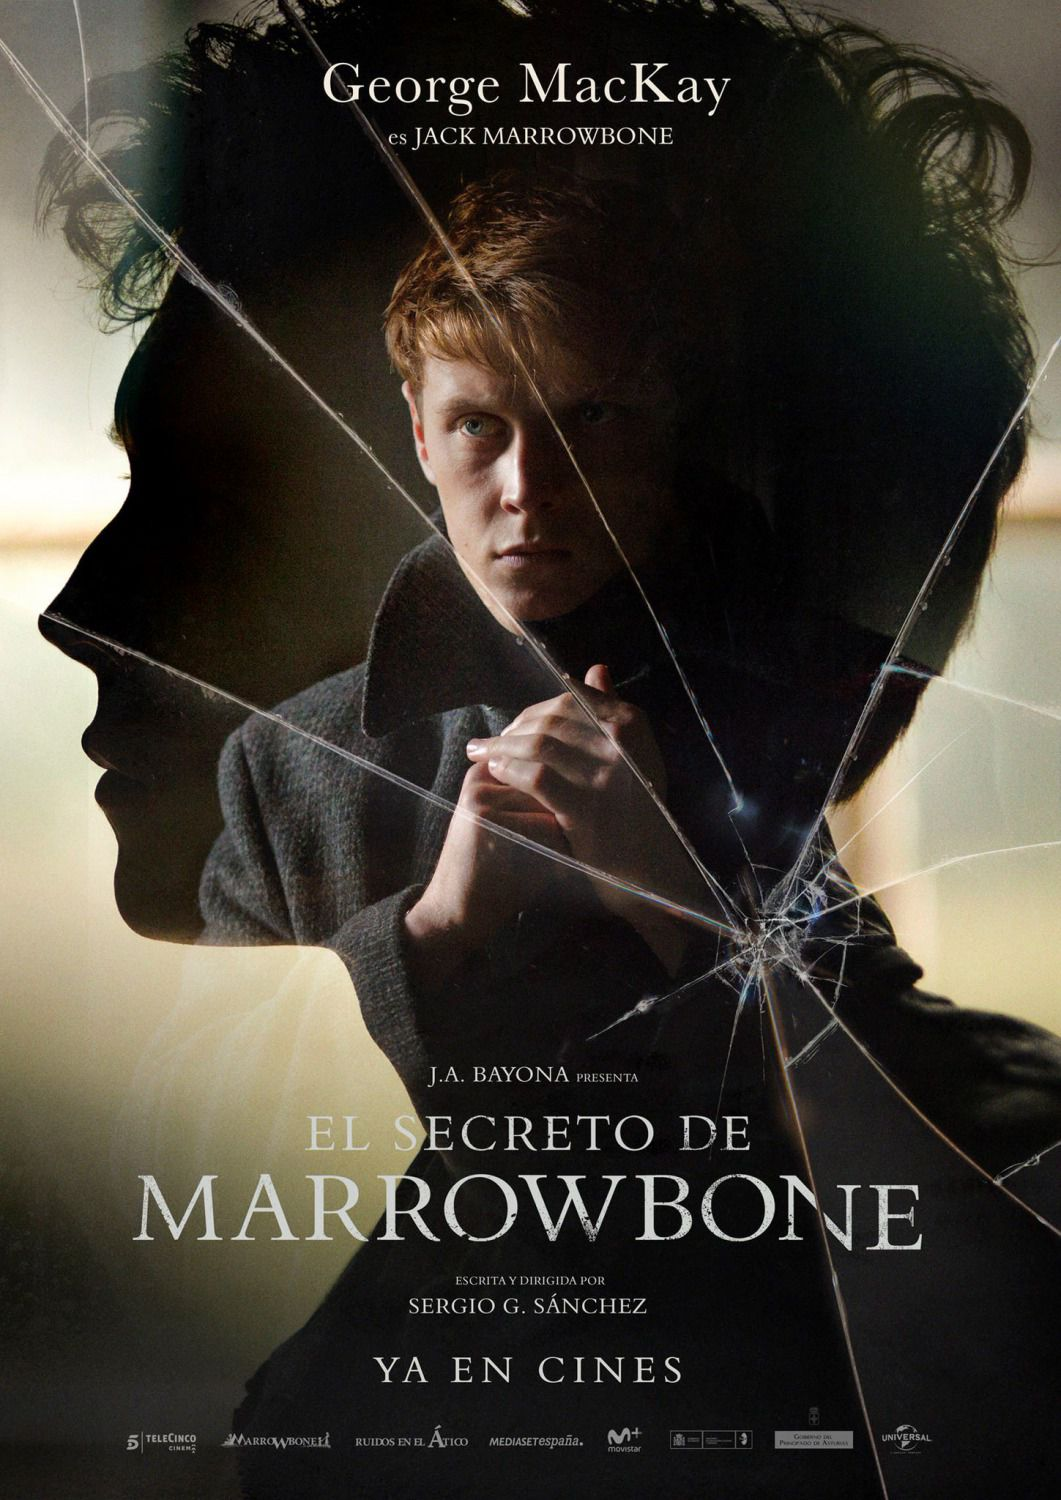 George MacKay is Jack Marrowbone